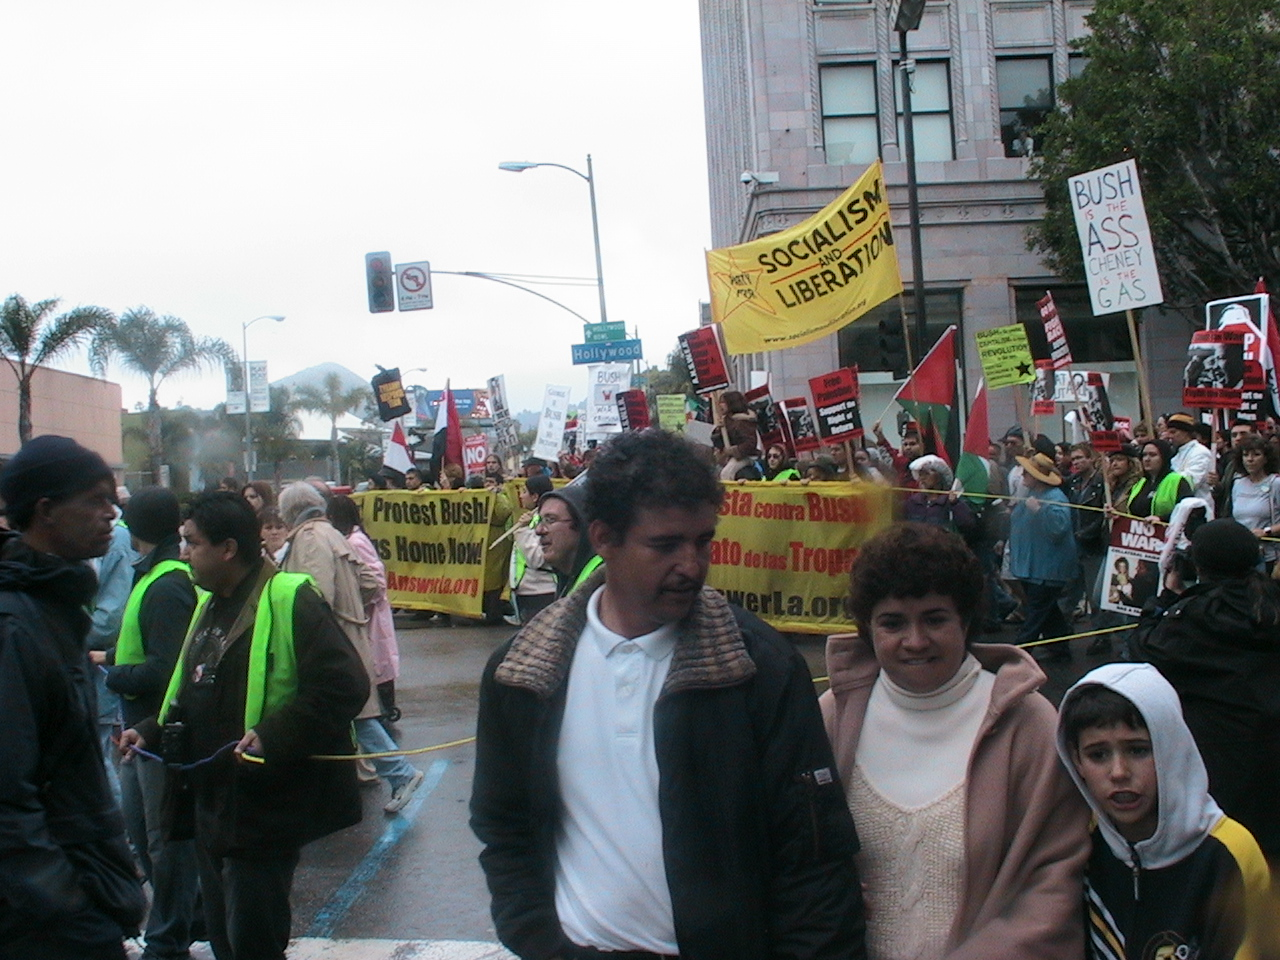 We will continue to fight against the War Anti war march in Hollywood March 19, 2005